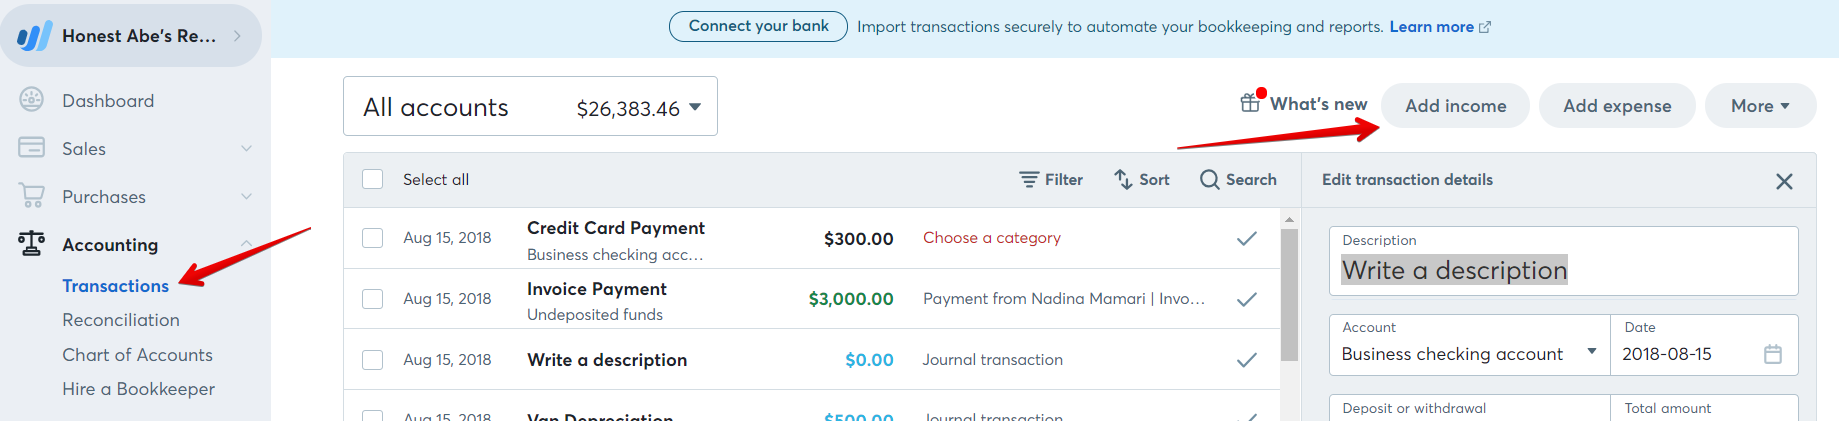 how to manually add transactions in pocketbook